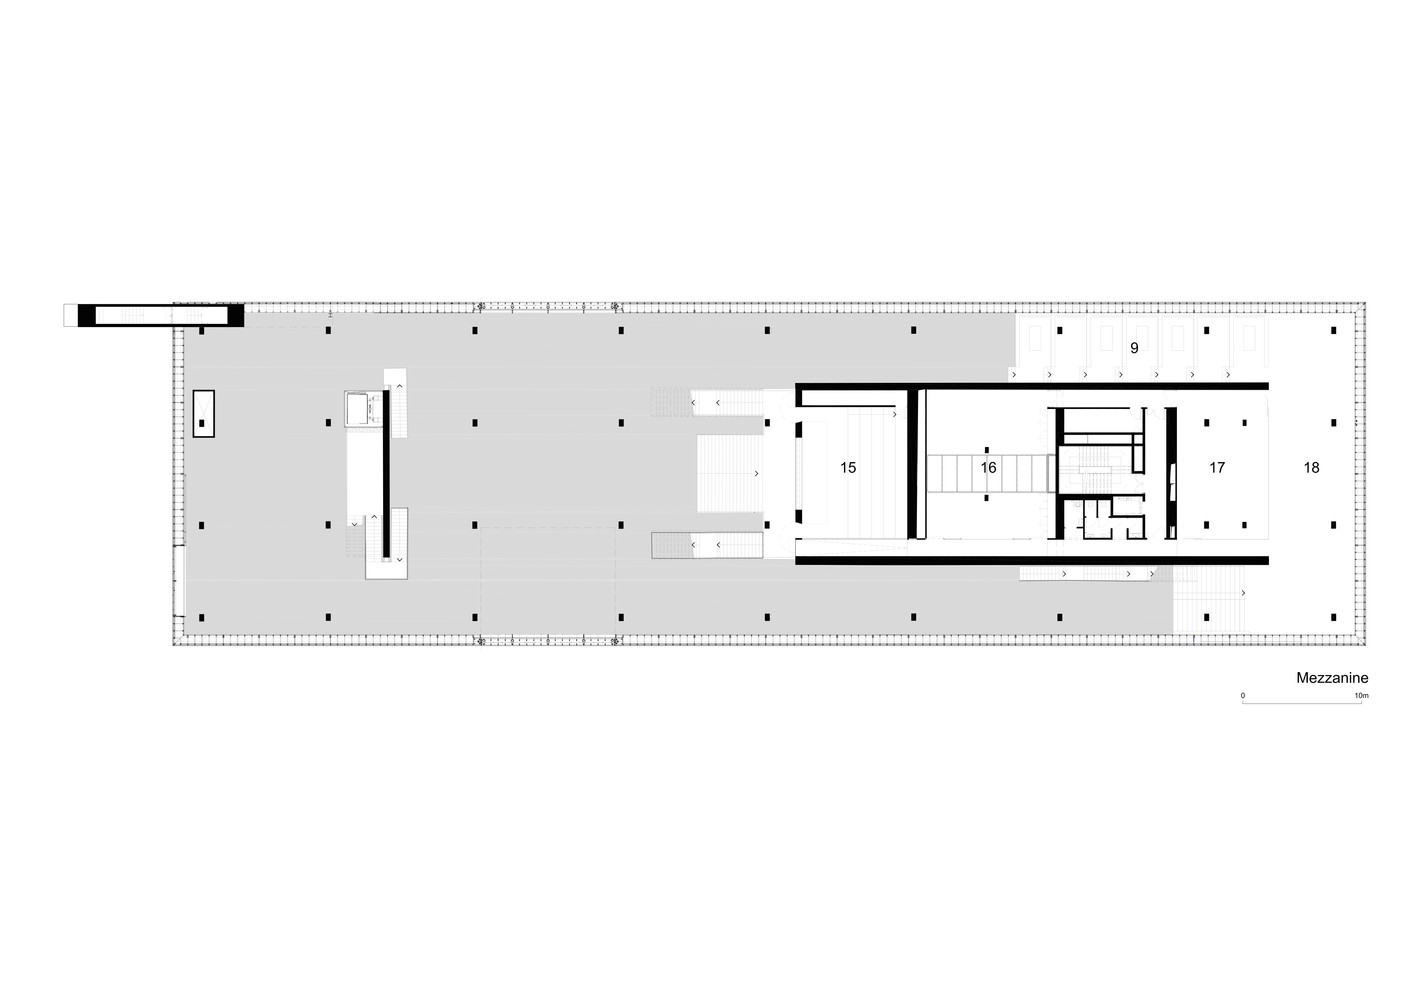 Gallery of Garage Museum of Contemporary Art OMA 36 – Garage Mezzanine Plans